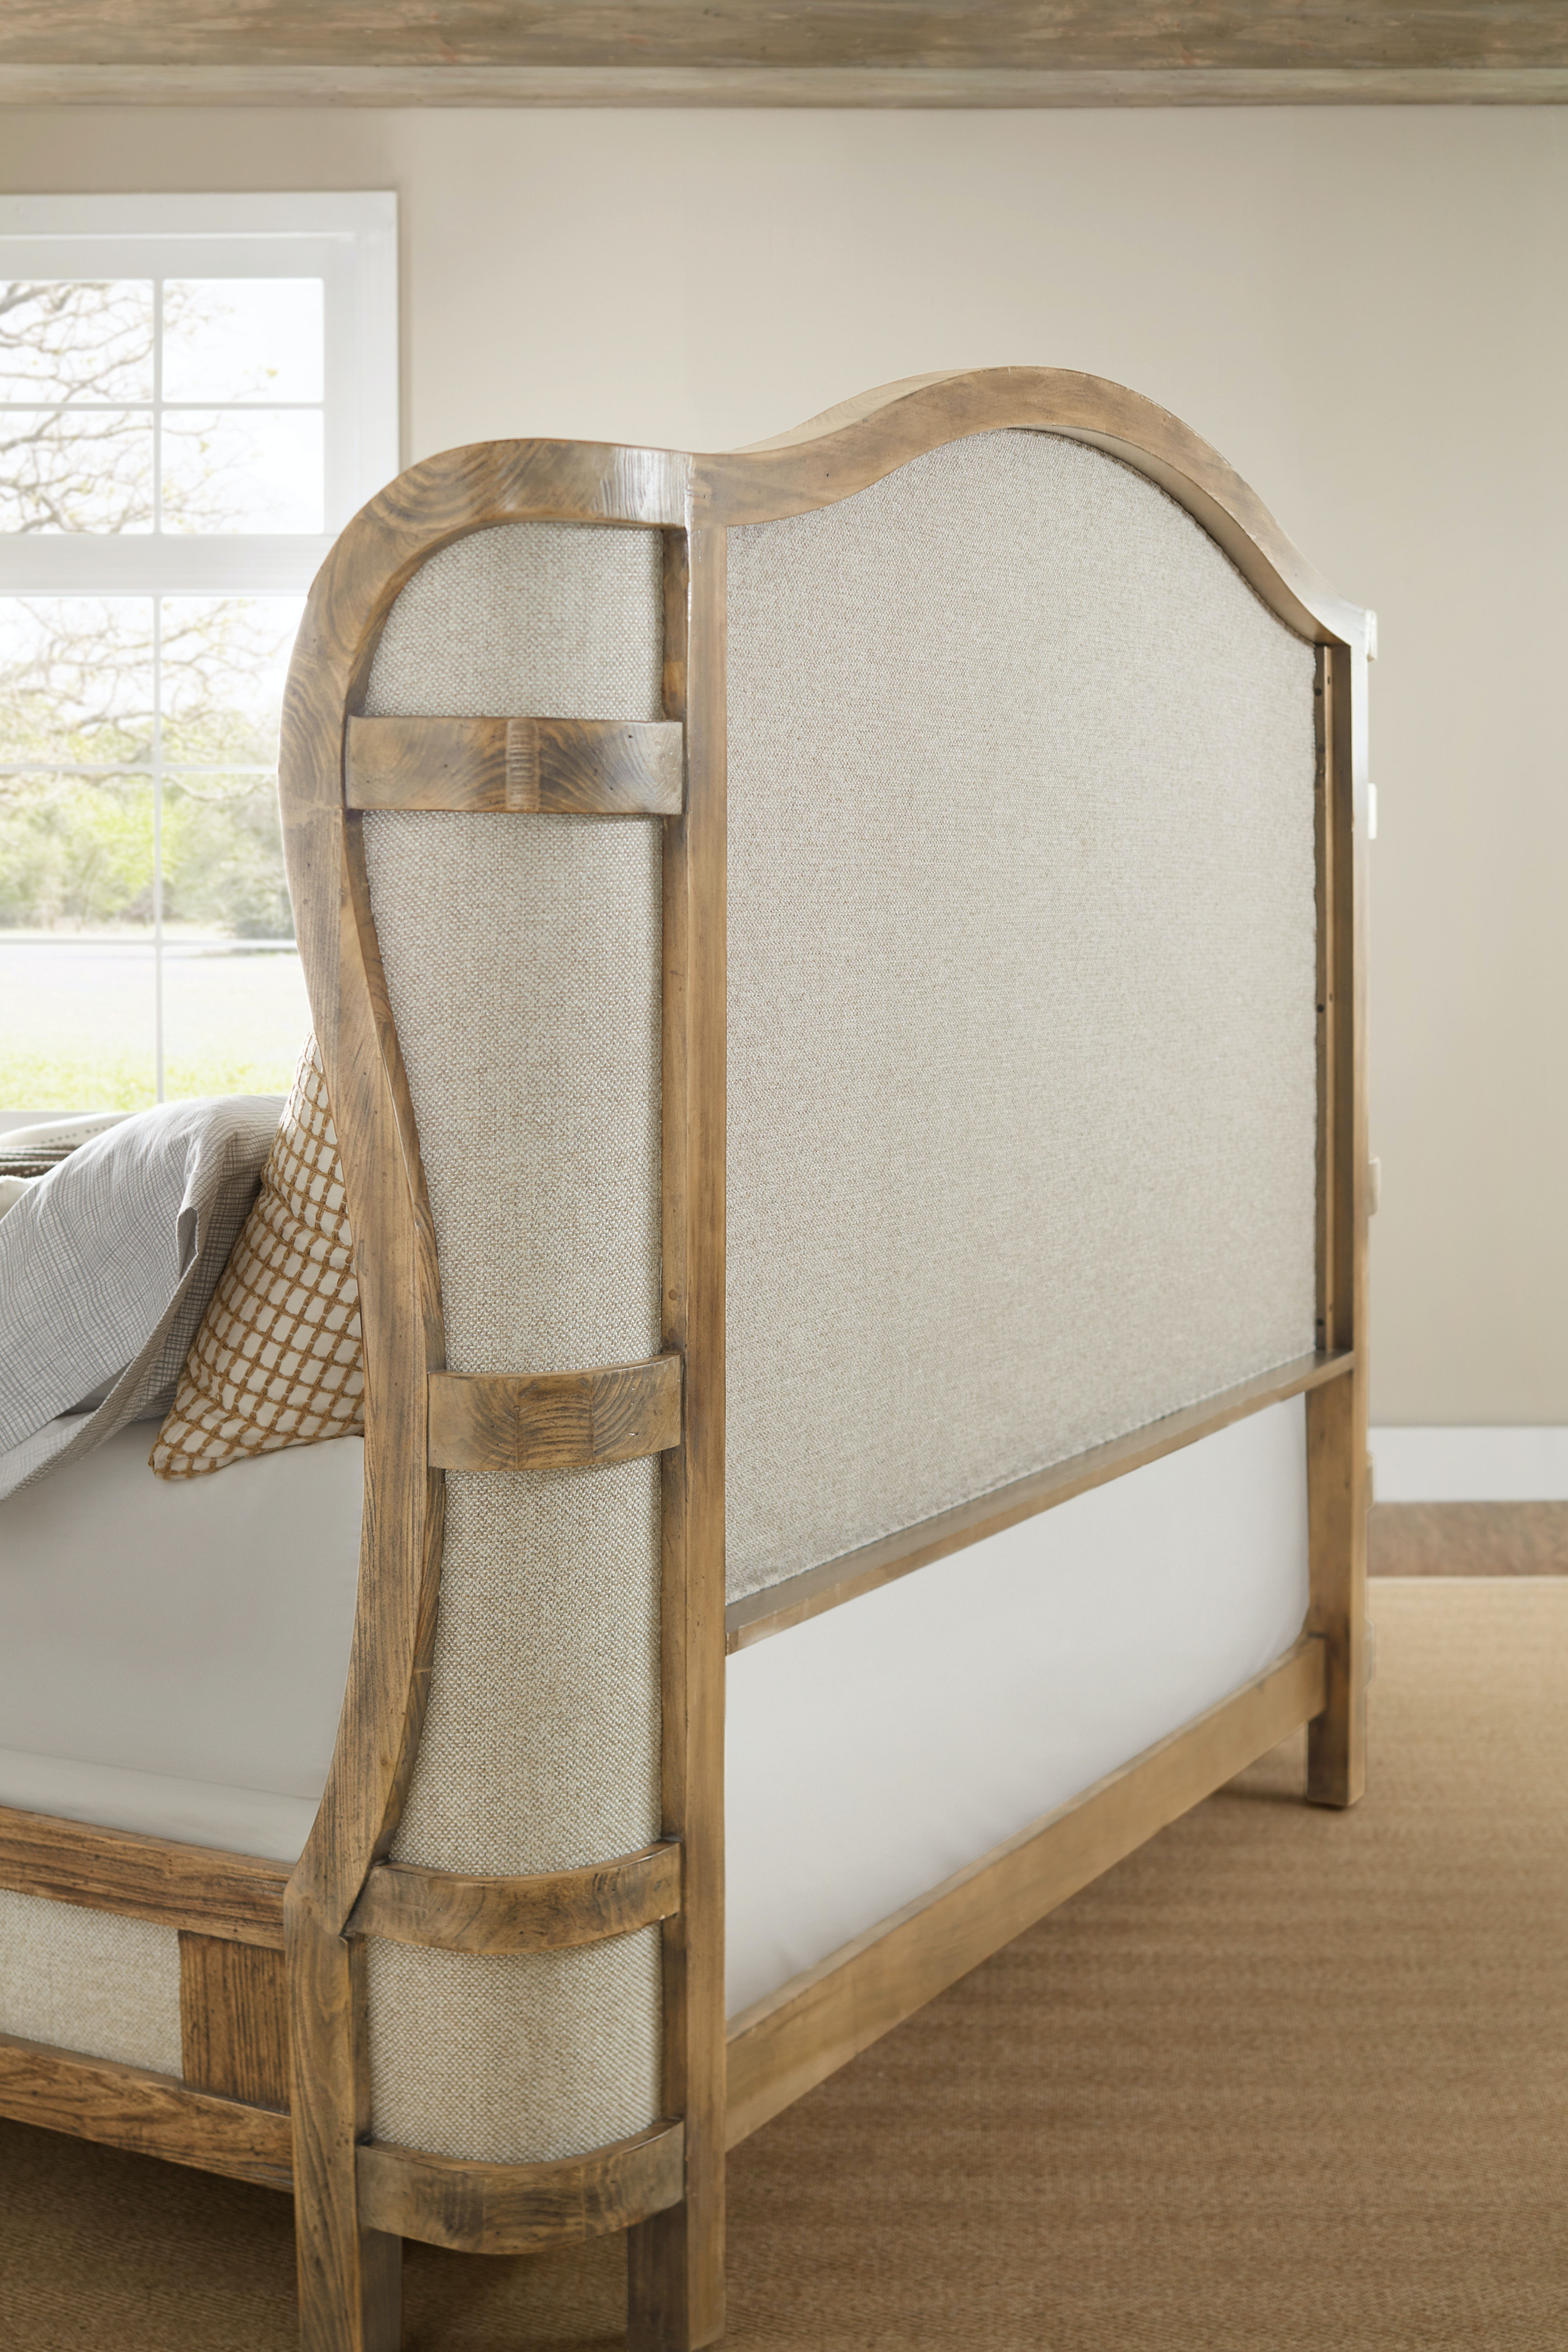 Hooker Furniture Roslyn County King Deconstructed Uph Panel Bed  1618 90866A MWD